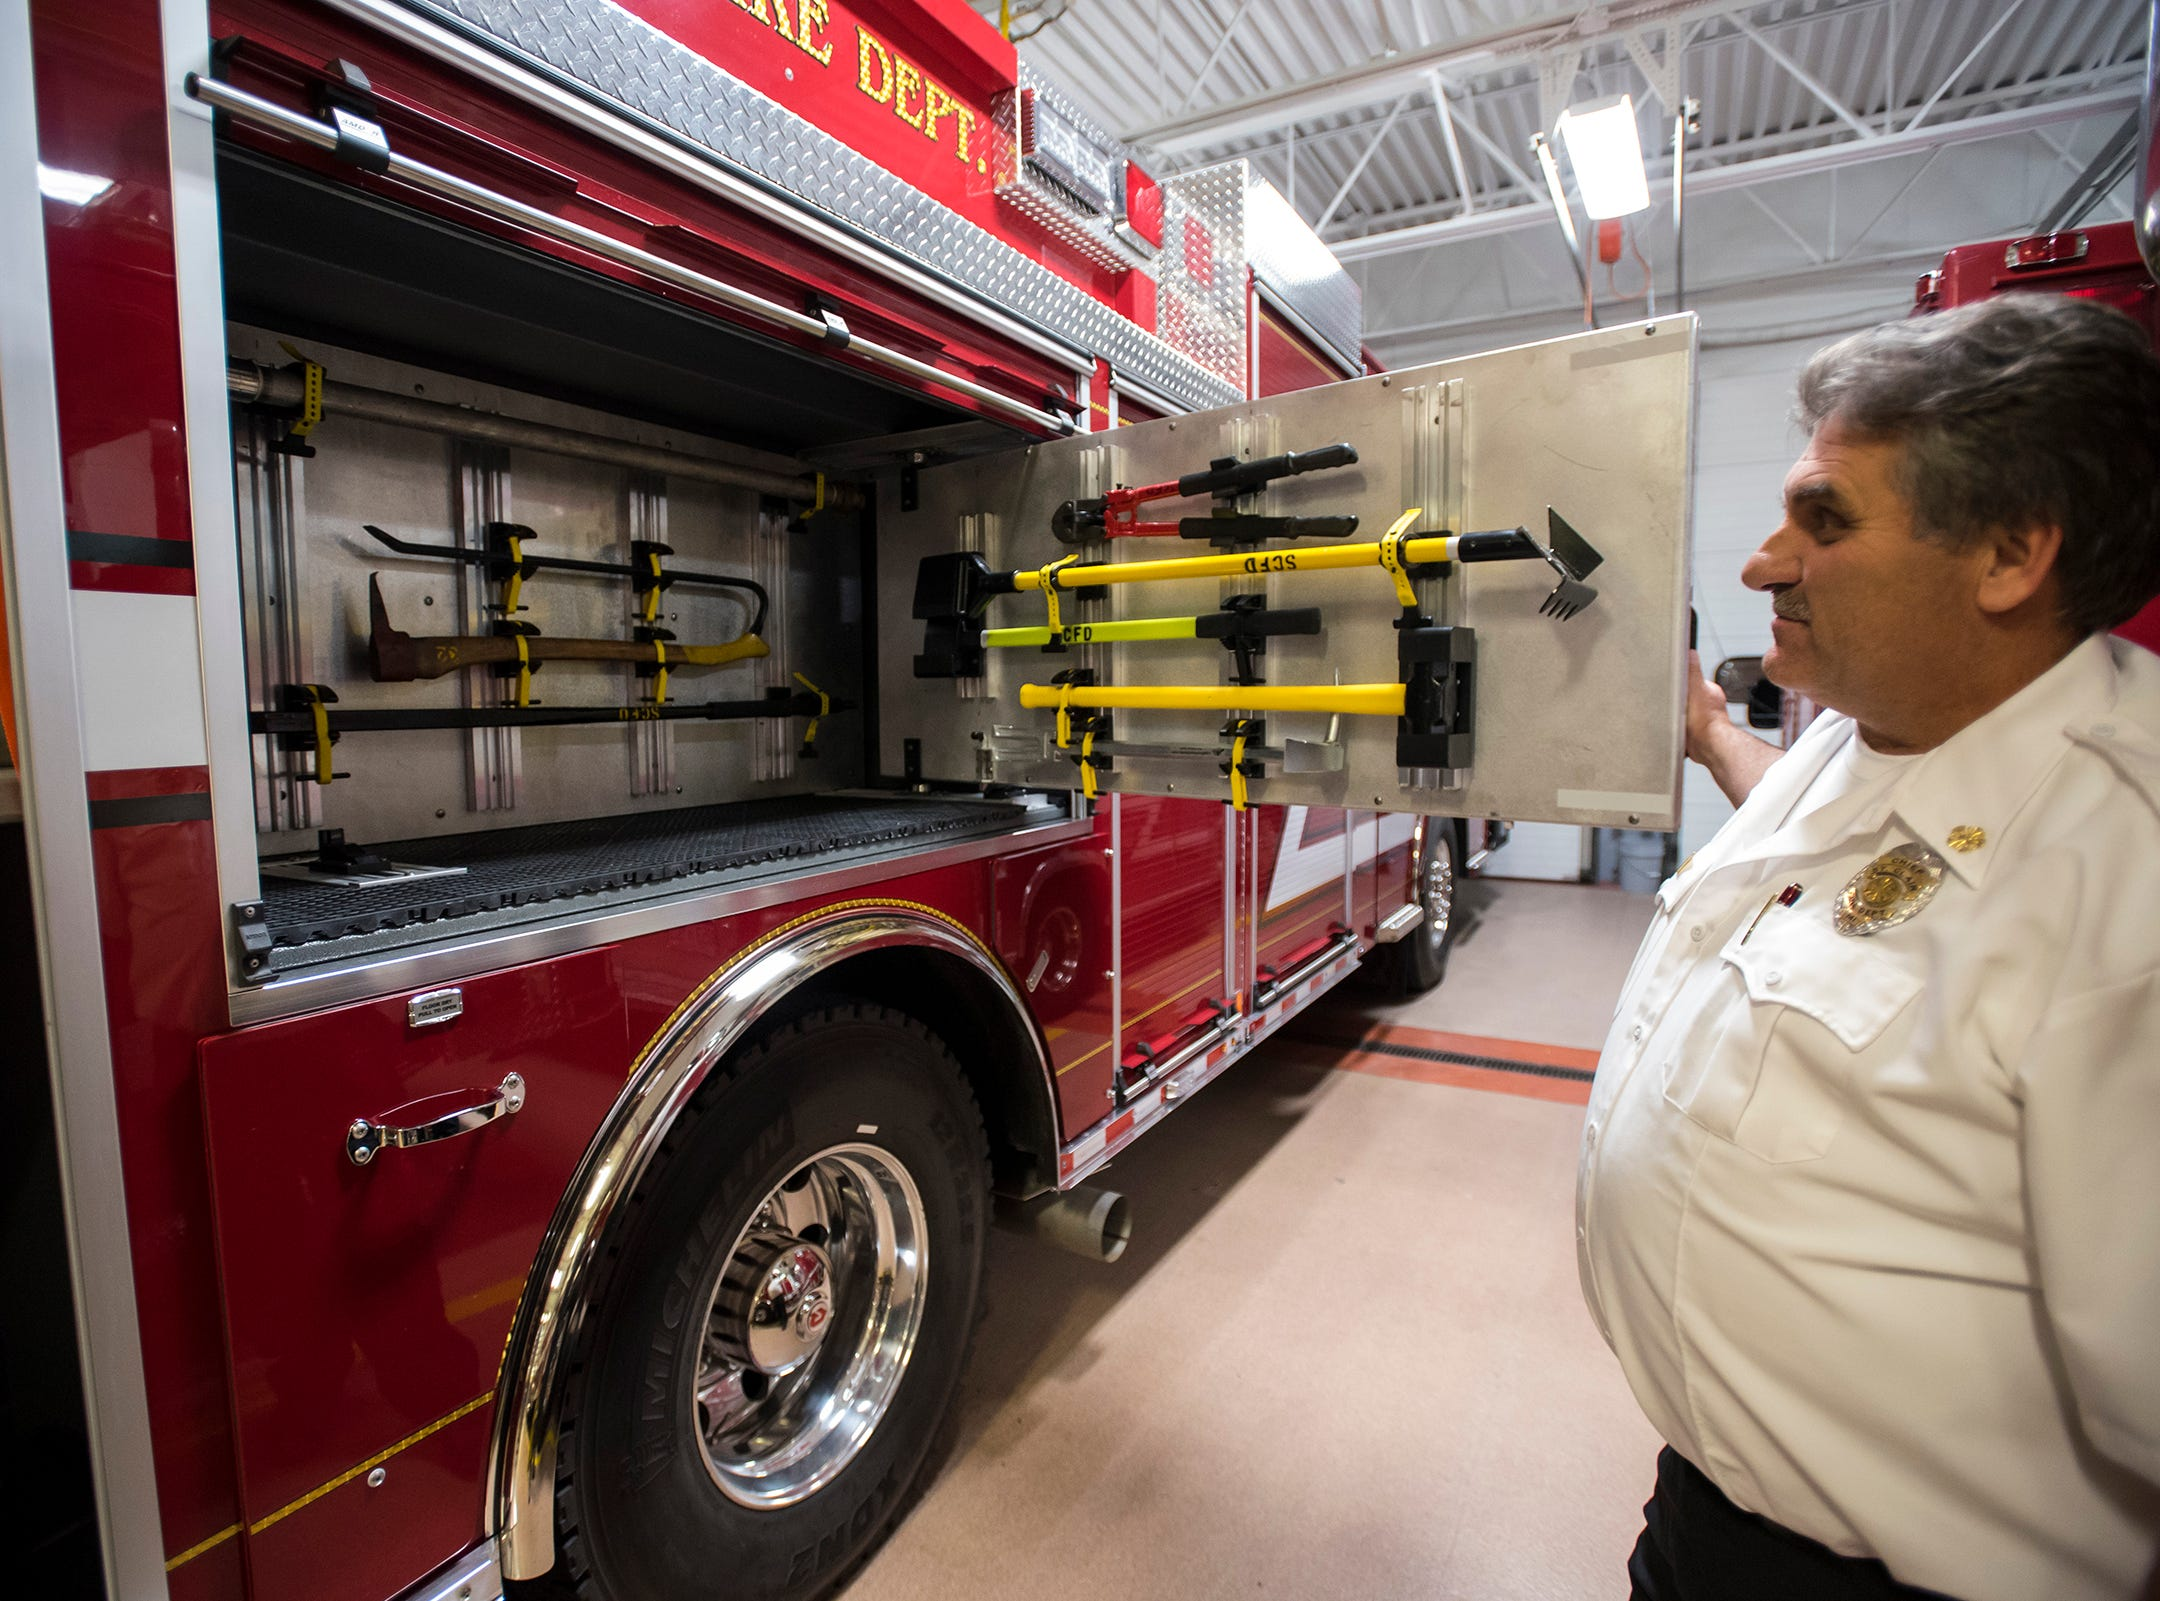 St. Clair Fire Authority Chief David Westrick opens a side compartment on the St. Clair Fire Department's new truck Wednesday, Nov. 7, 2018. The truck carries all of the normal equipment including ladders, tools and bail out bags.